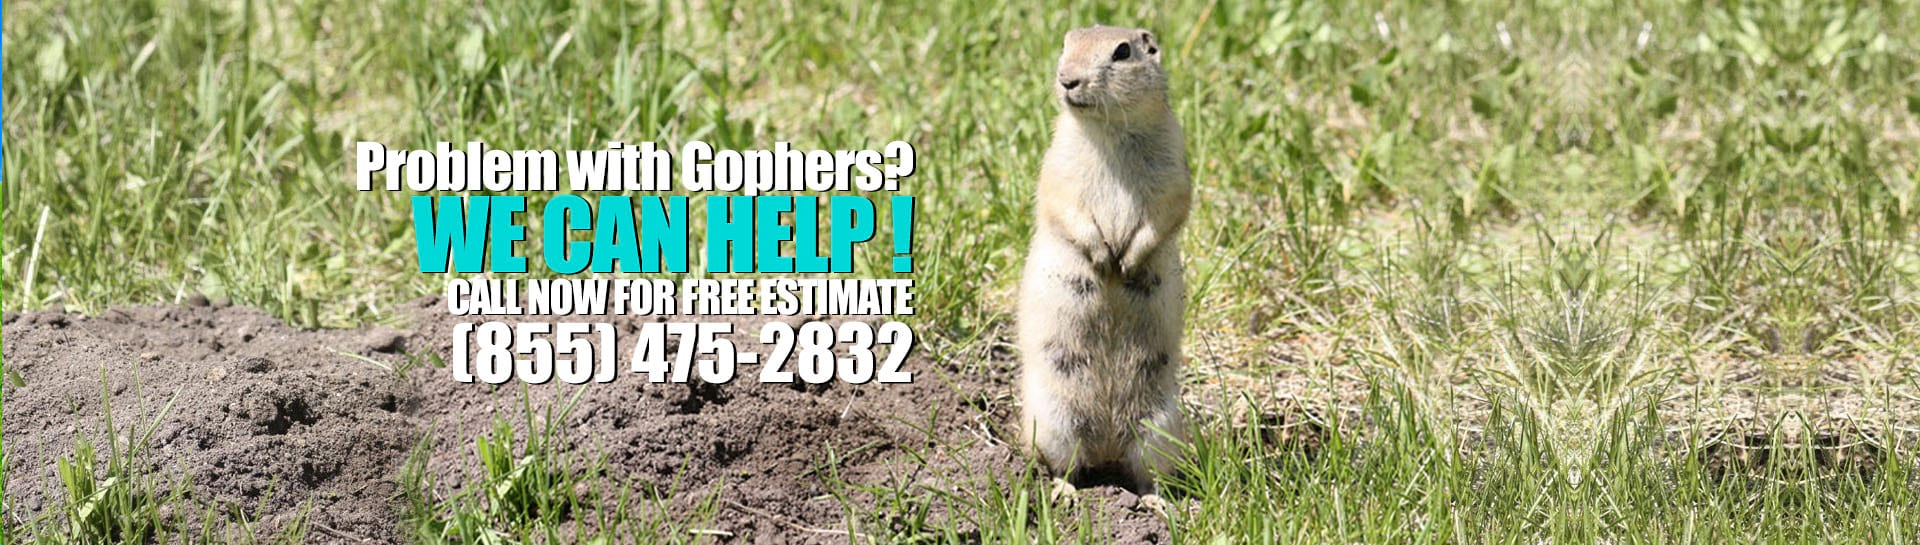 Problem with Gophers